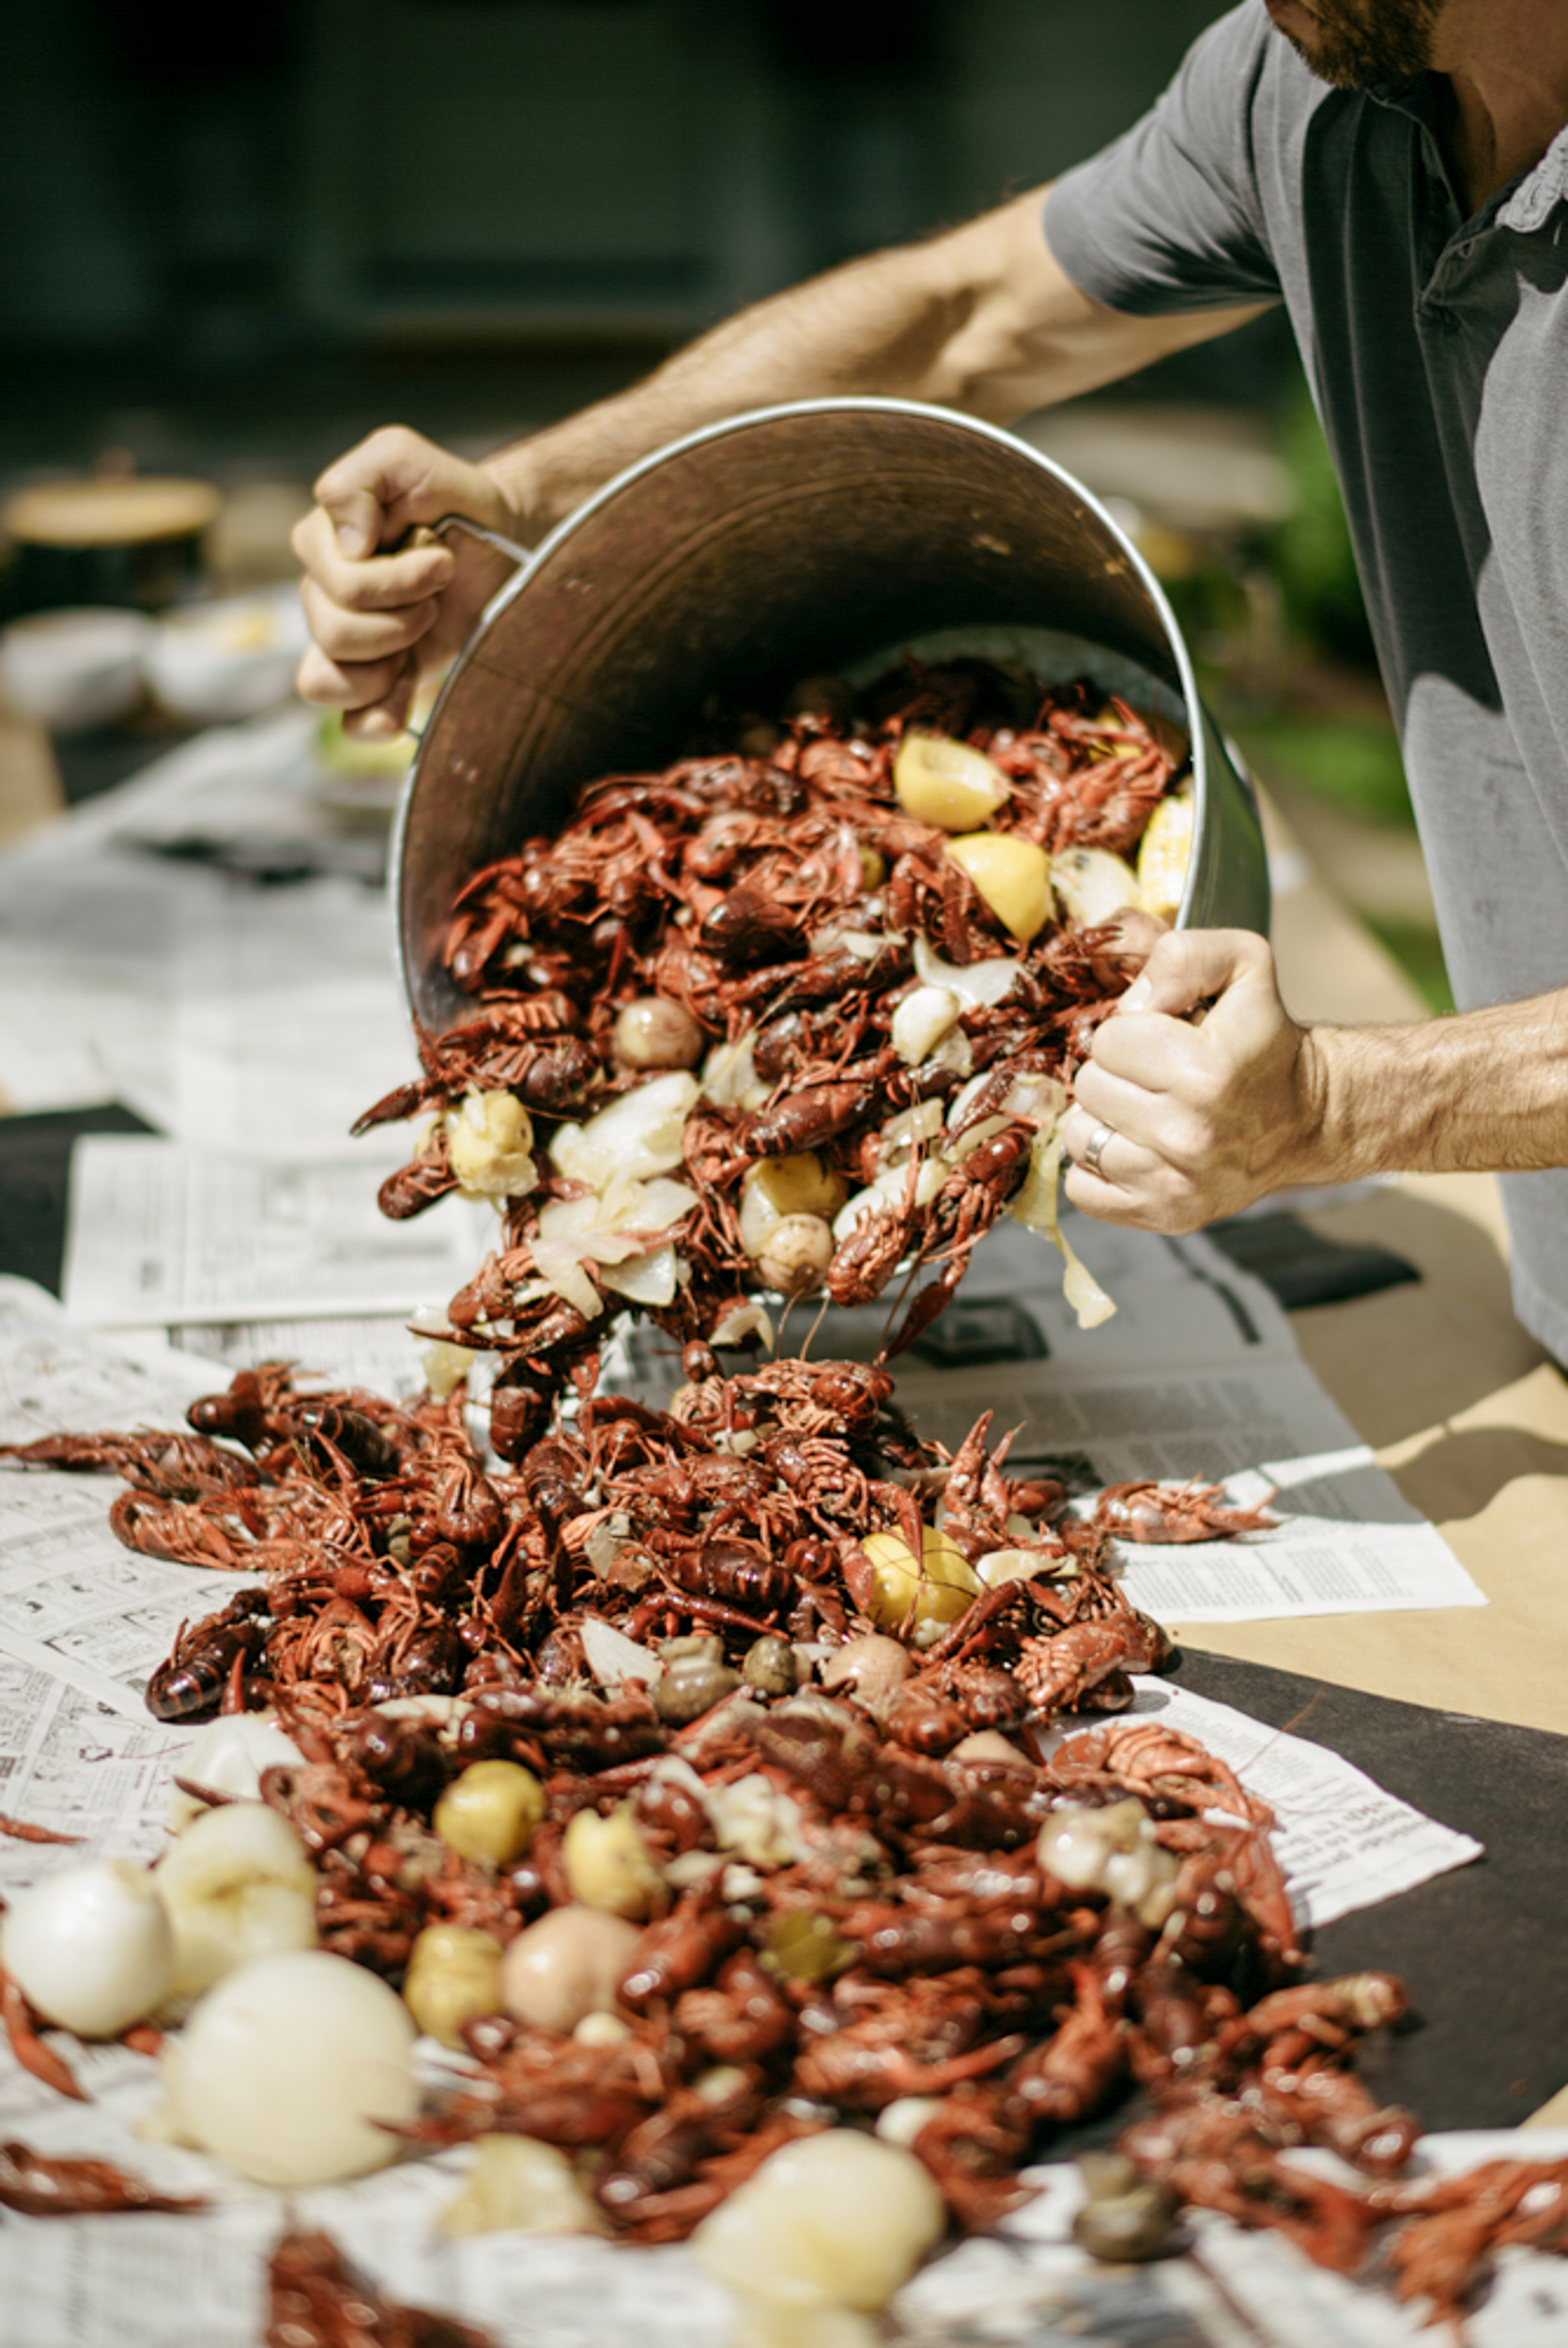 149-mayker-creative-crawfish-boil-summer-party-ideas-rentals-nashville-design-tips-hosting-entertaining-Fox-Country-Farmhouse-Fourth-of-July.jpg